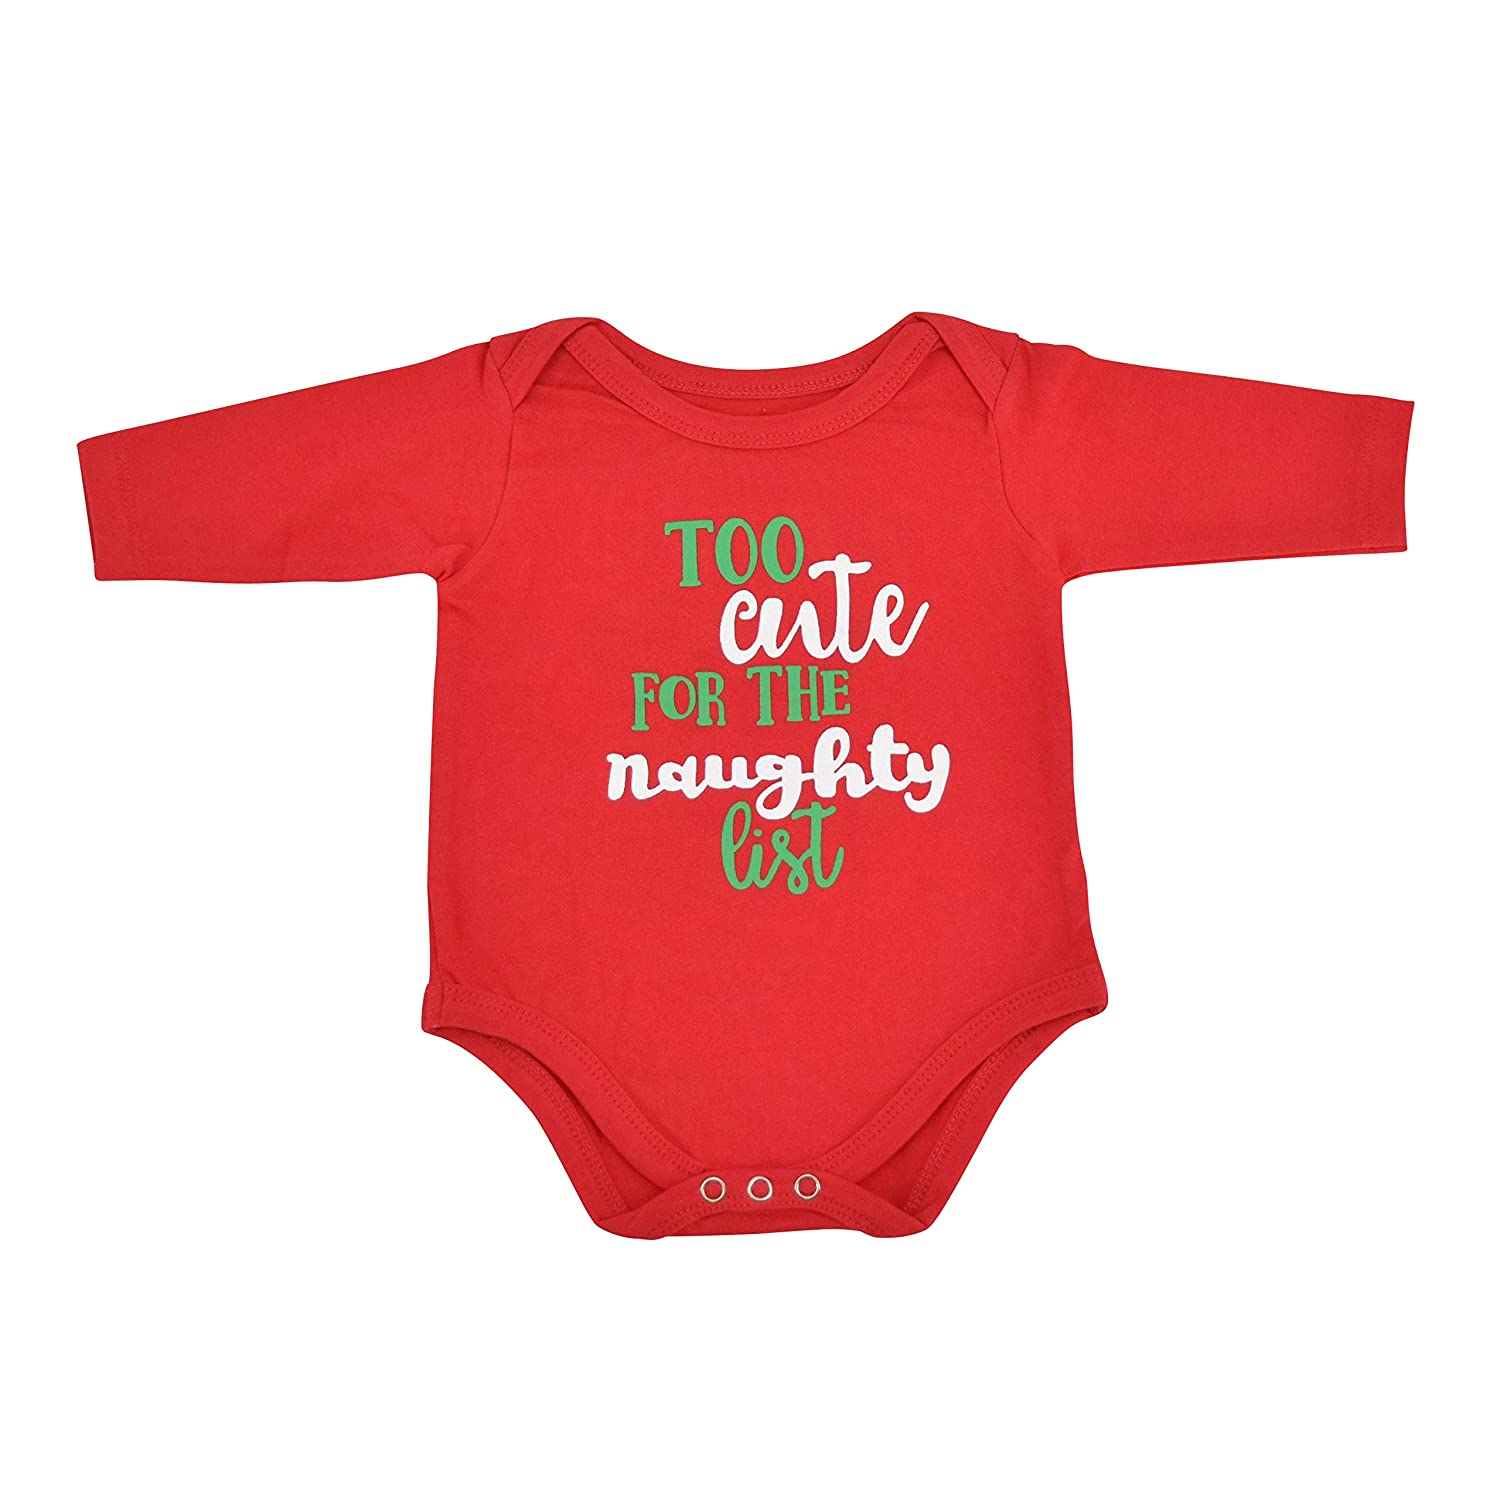 540471c45 Amazon.com: Unique Baby Unisex 1st Christmas Outfit Naughty List Onesie  Layette: Clothing